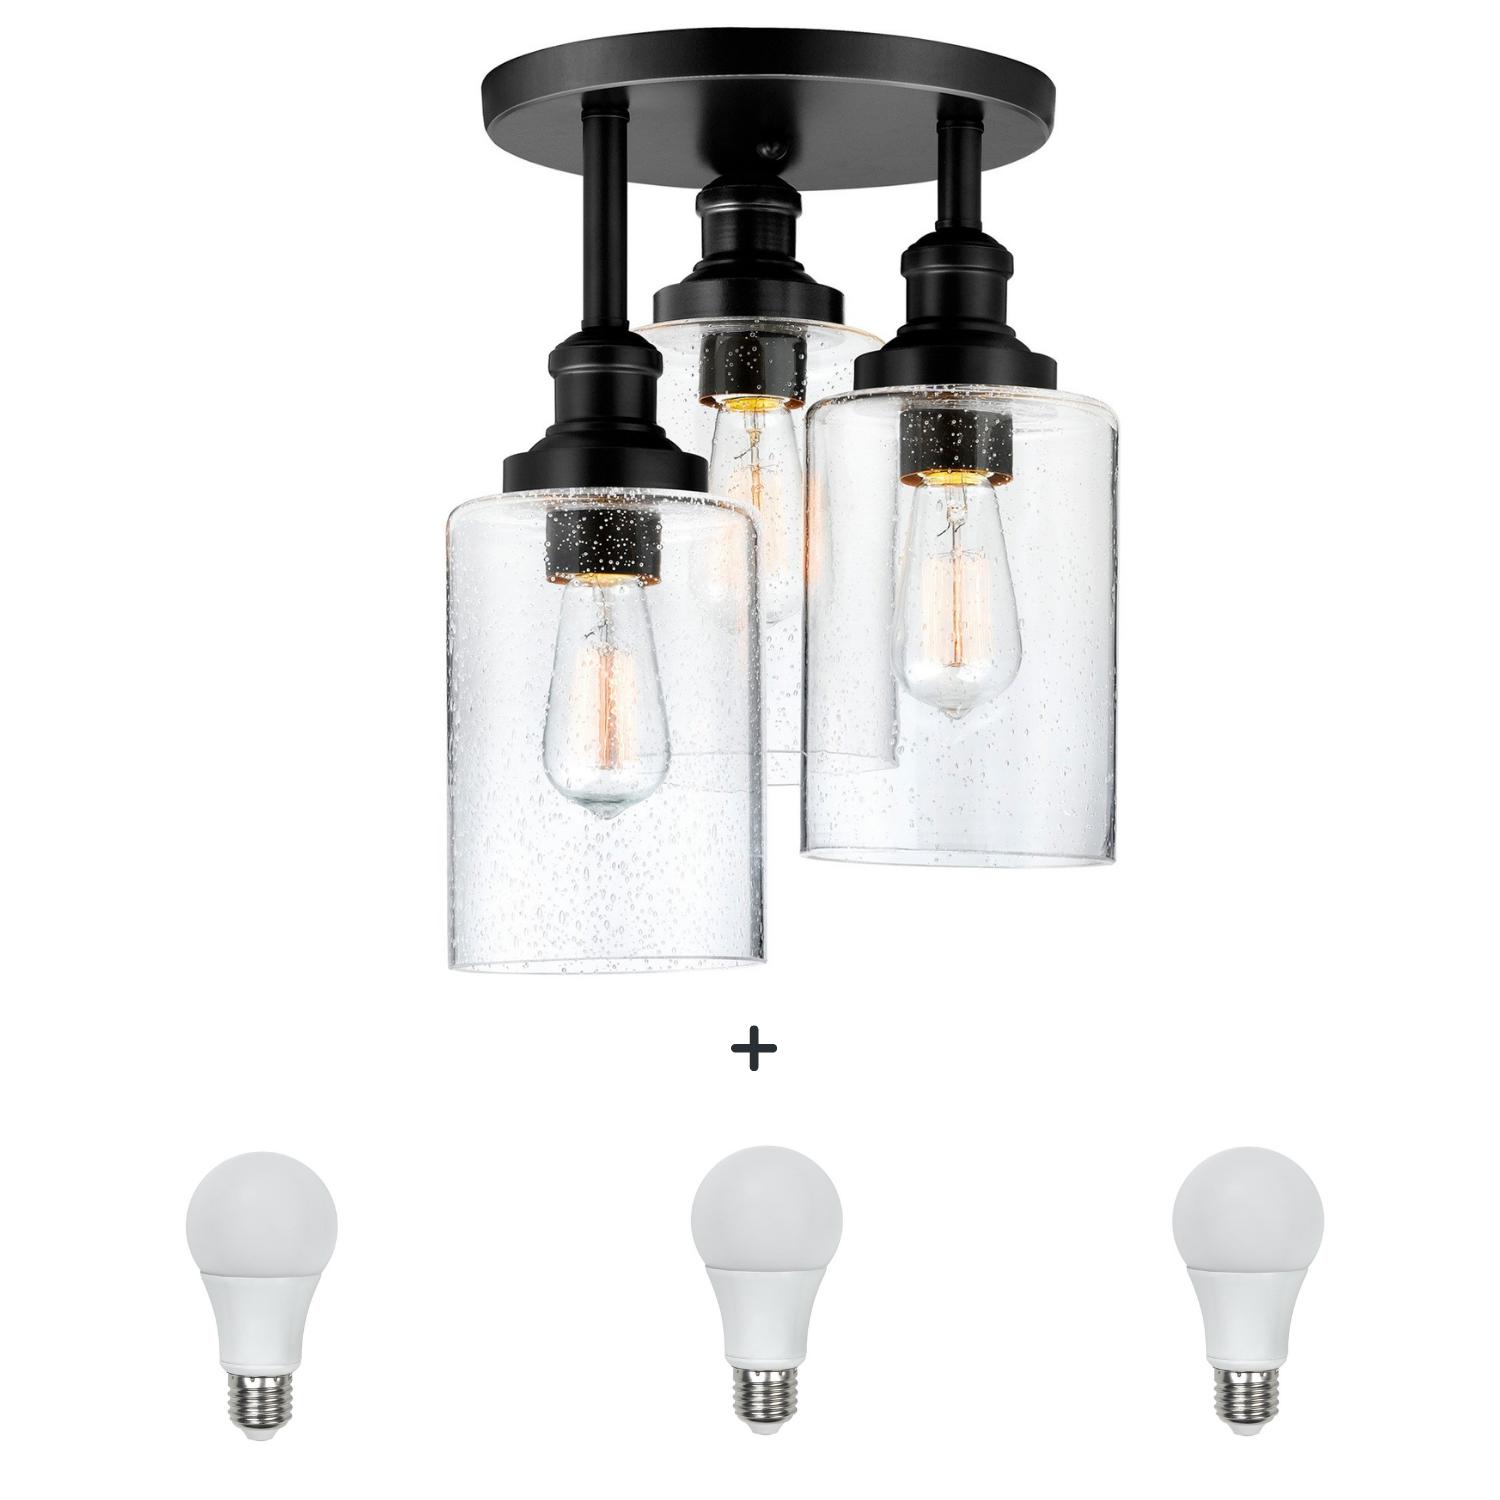 QPlus Trilogy Semi Flush Mount Ceiling Light Hanging Metal, Seedy Glass Fixture with 3 E26 Bulb Base in Bronze & Black Finish + 3 A21 LED Bulbs Free